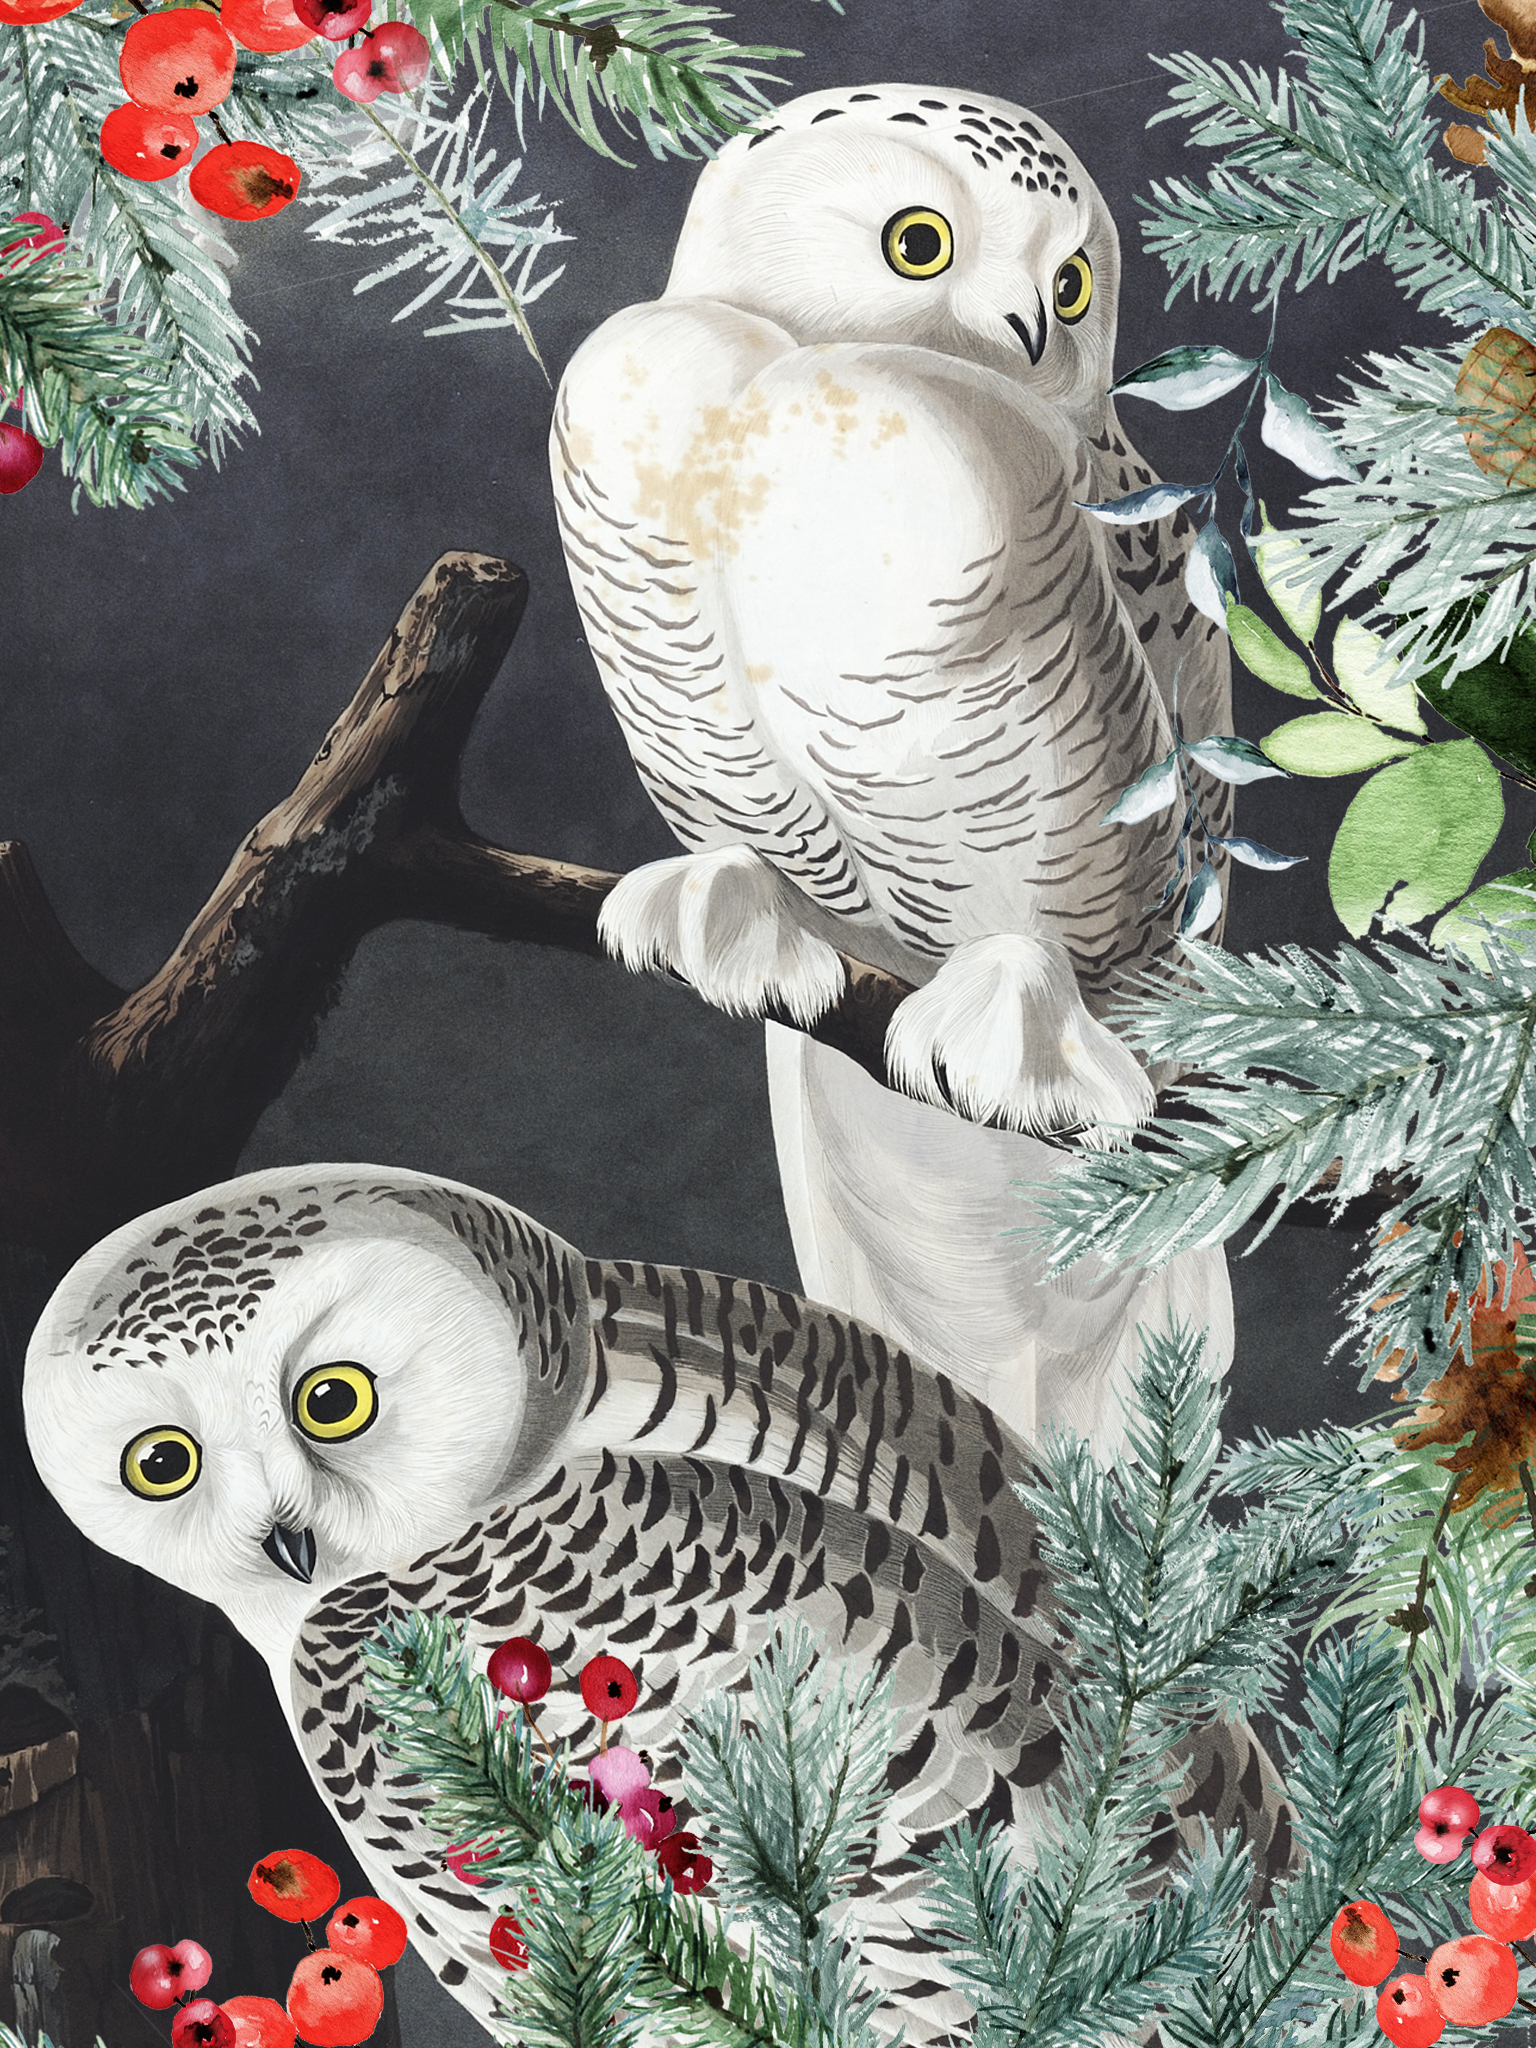 A artist drawing of two snowy owls sitting on tree branches. A festive frame of greenery has been added